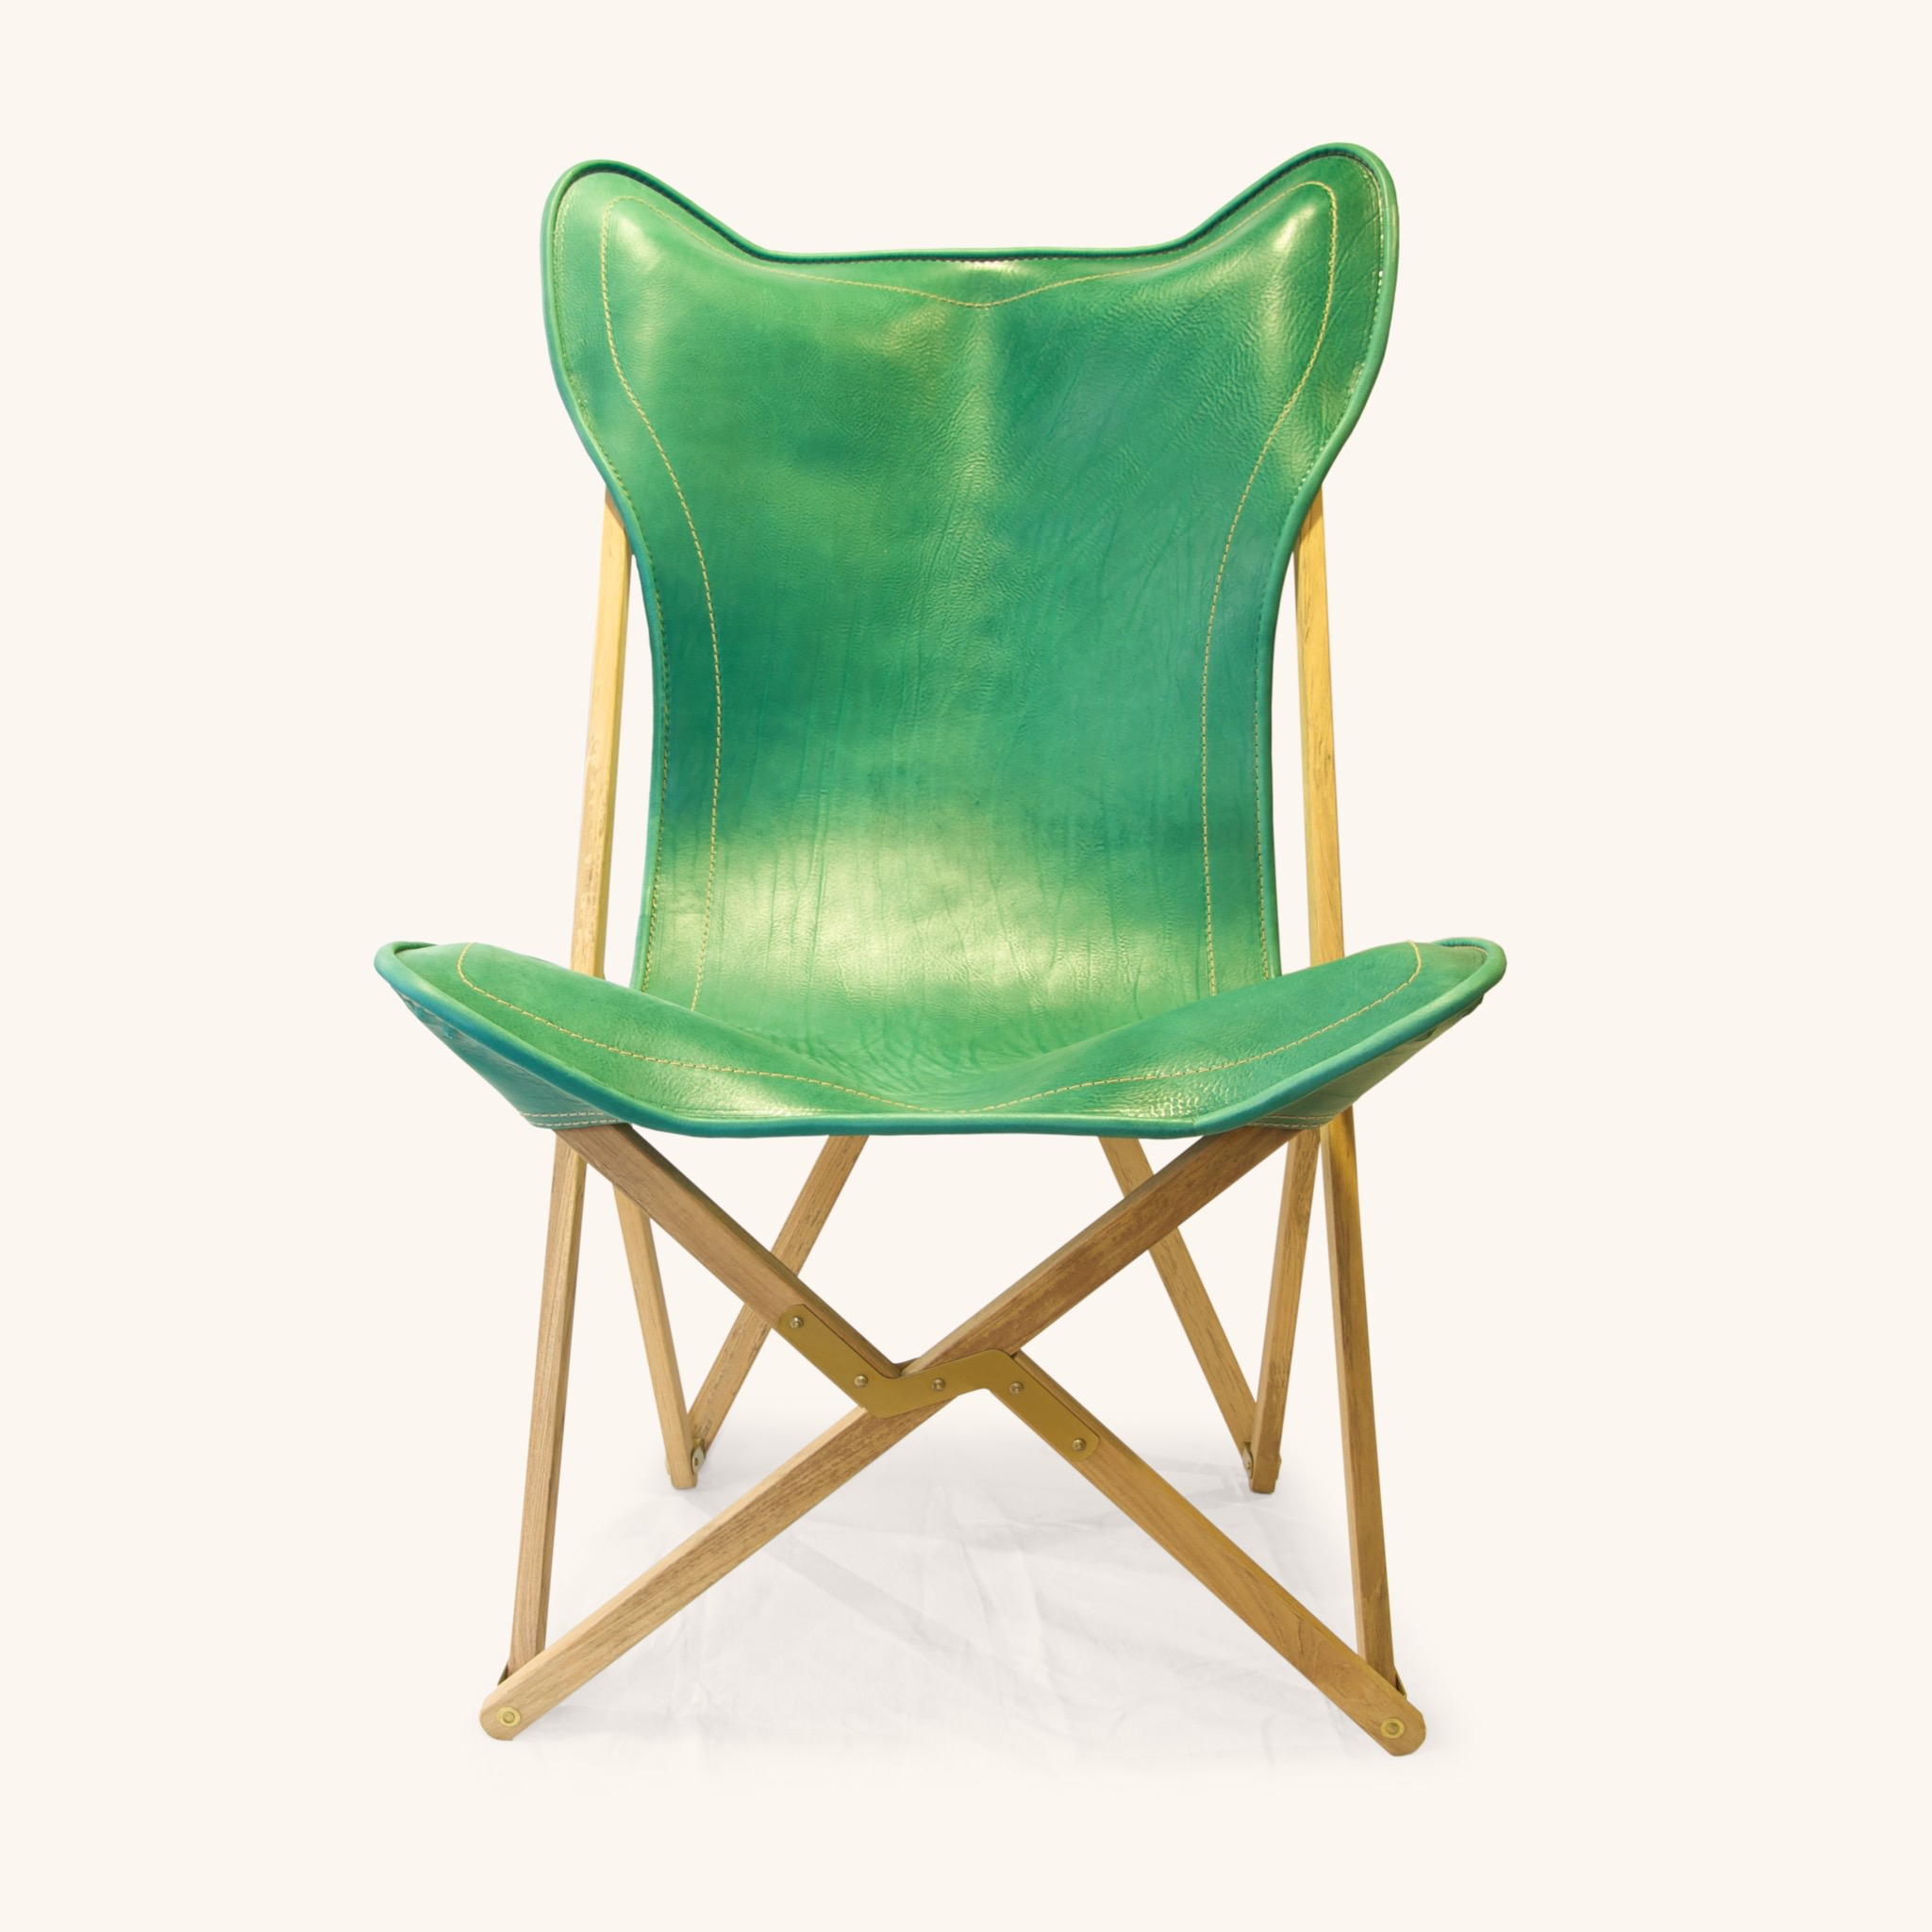 folding chair green office neck support attachment tripolina dario alfonsi in leather and teak